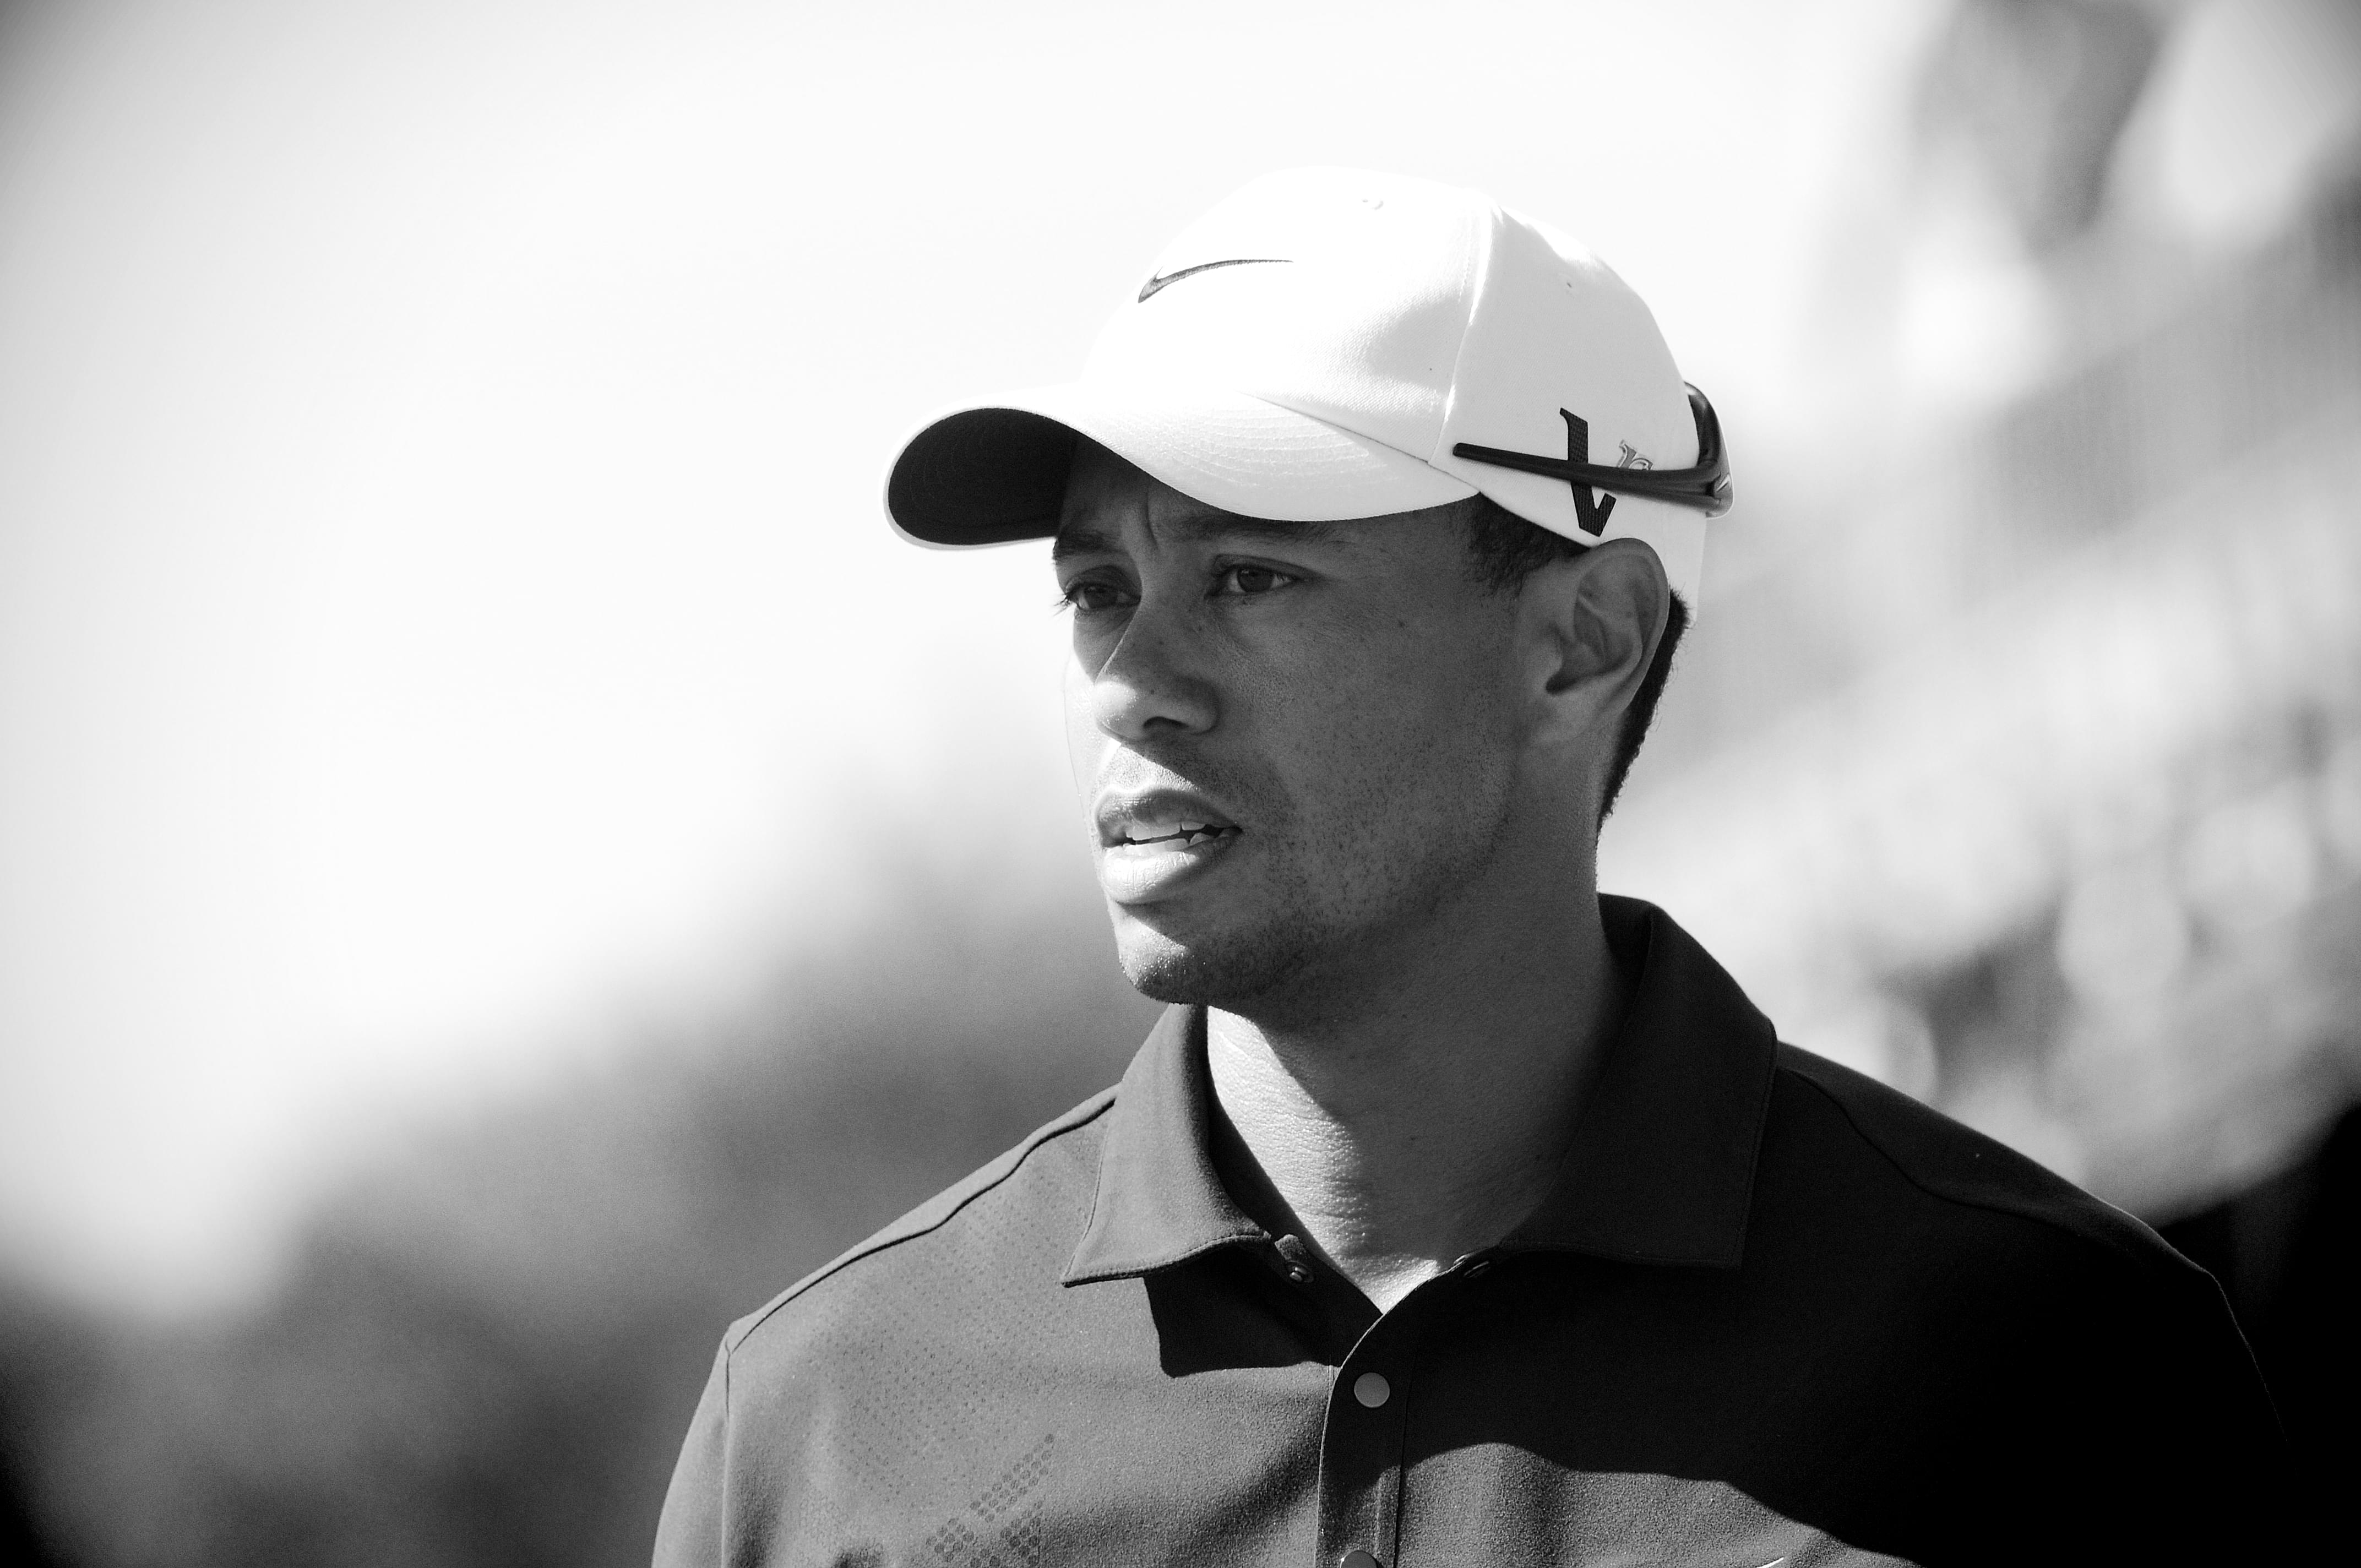 Tiger Woods suffers Injuries in Car Crash